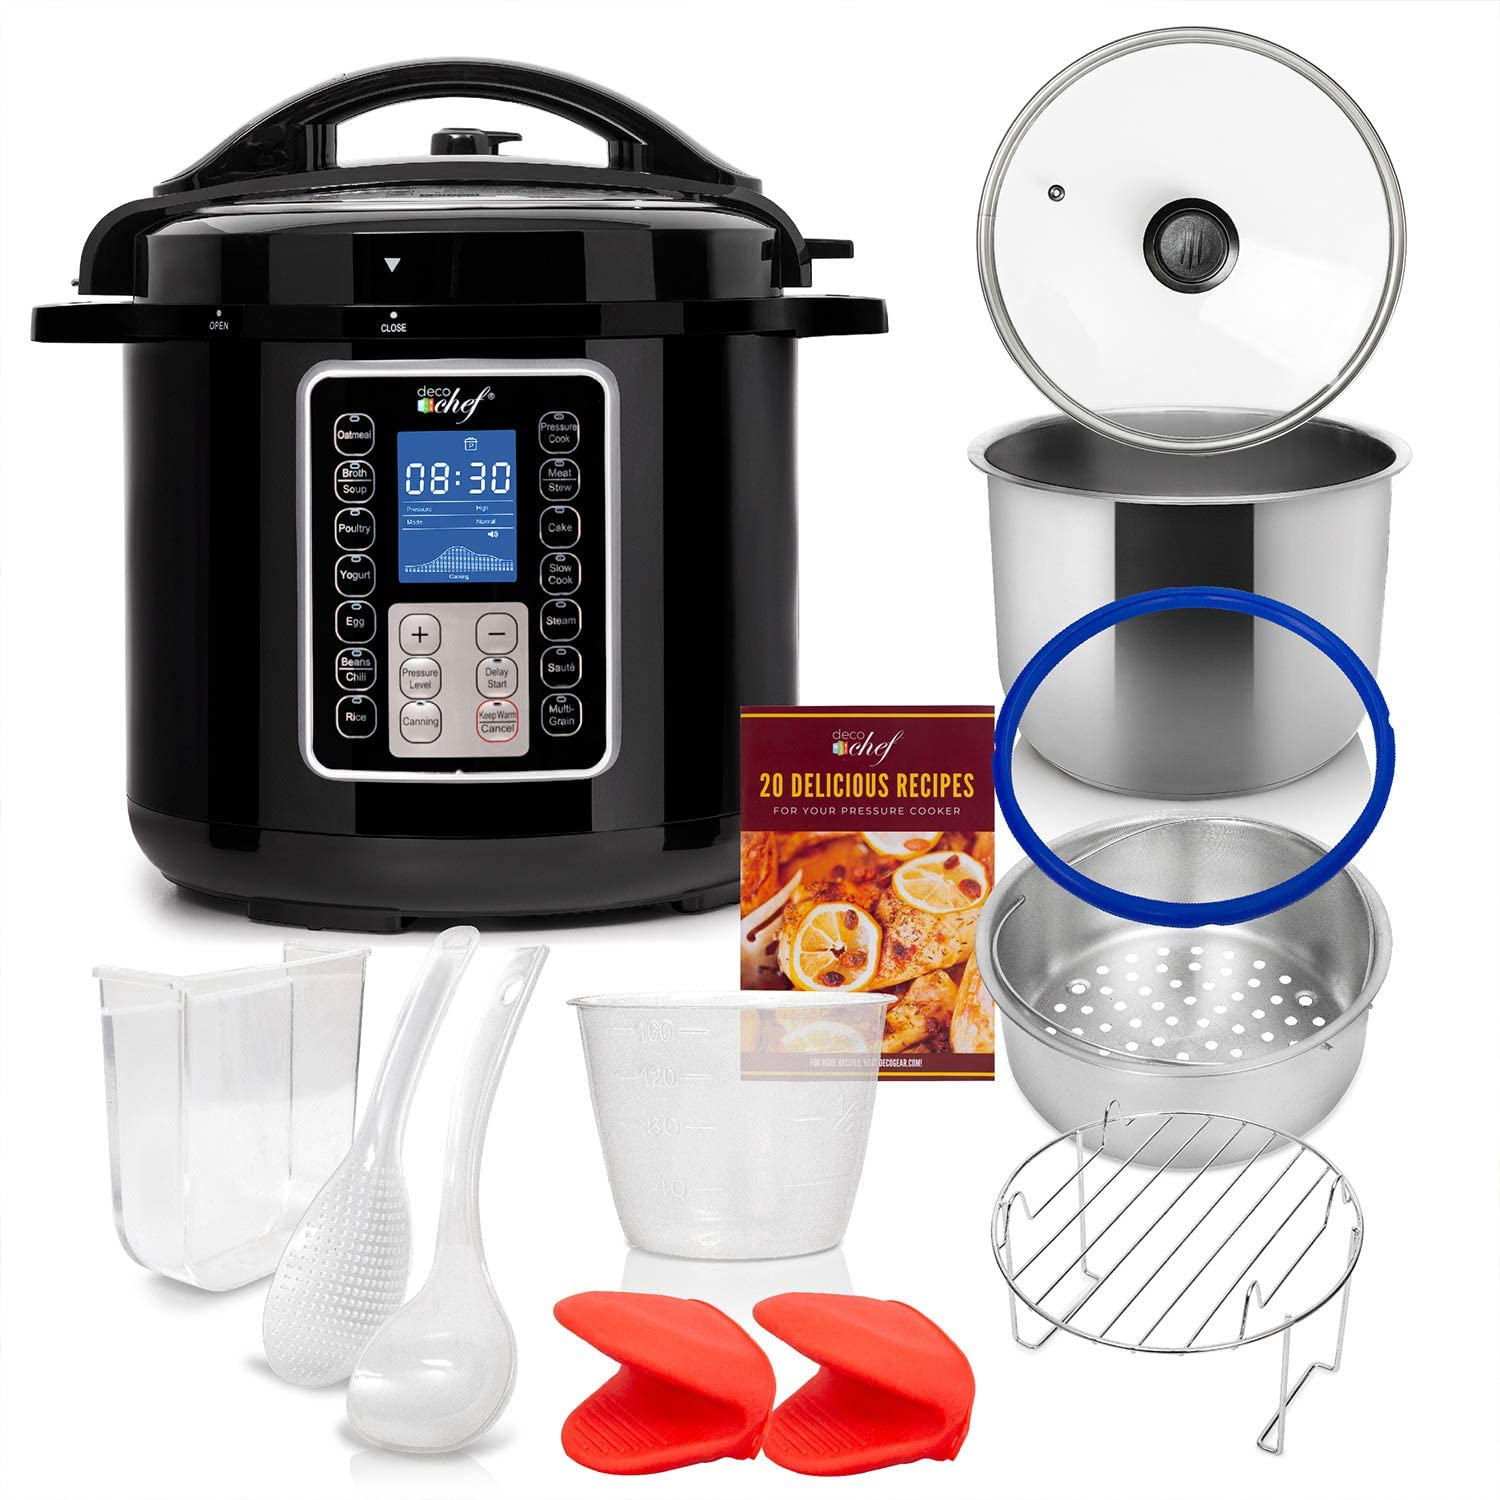 Deco Chef 6 QT 10-in-1 Pressure Cooker Instant Rice, Saut233, Slow Cook, Yogurt, Meats, Deserts, Soups, Stews Includes Recipe Book, Tempered Glass Lid, Mitts, Grill Rack, and Steaming Basket